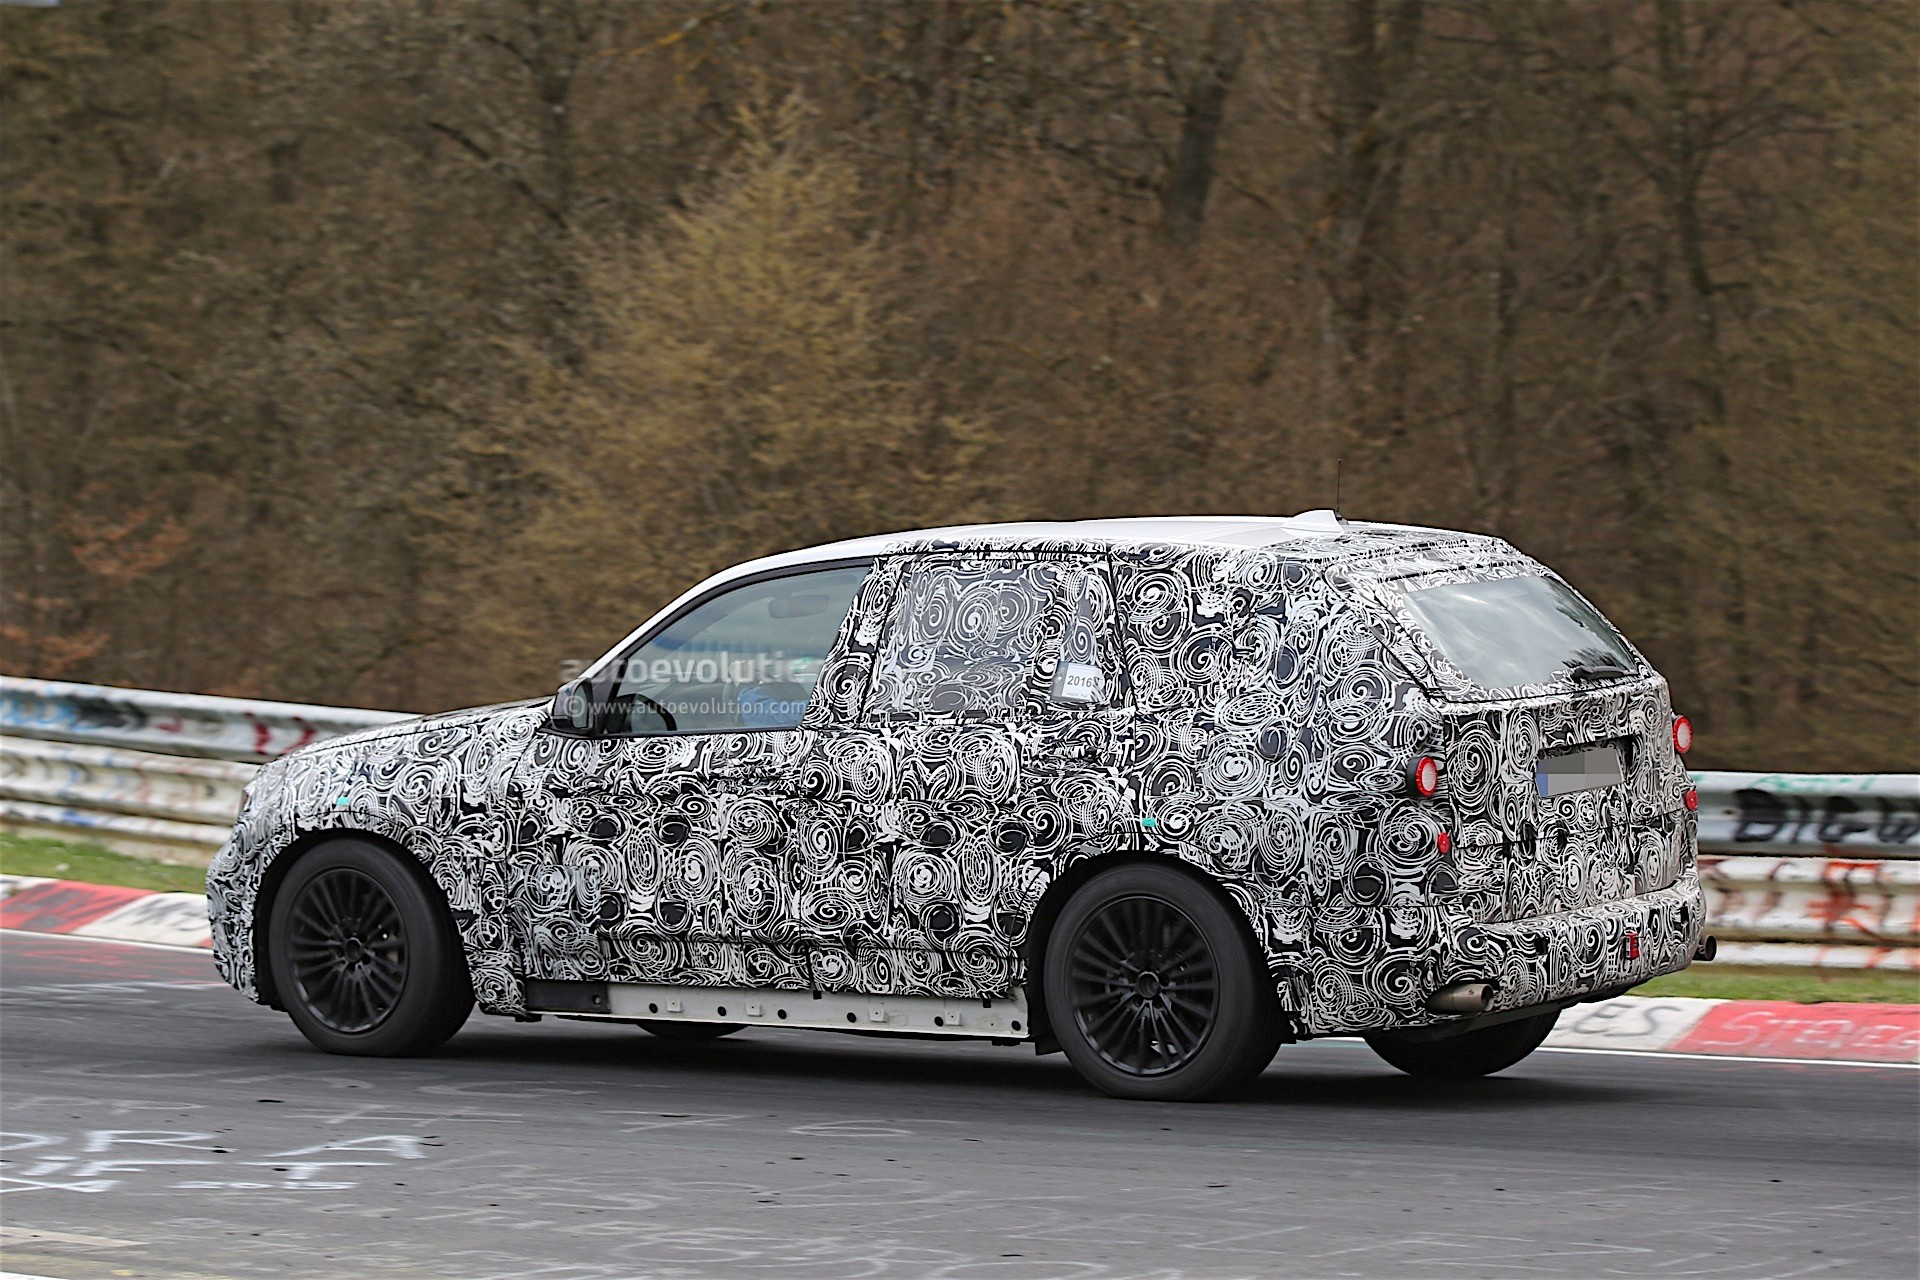 next-gen-2​019-bmw-x5​-laps-nurb​urgring-lo​oks-less-n​ose-heavy-​than-curre​nt-model_7